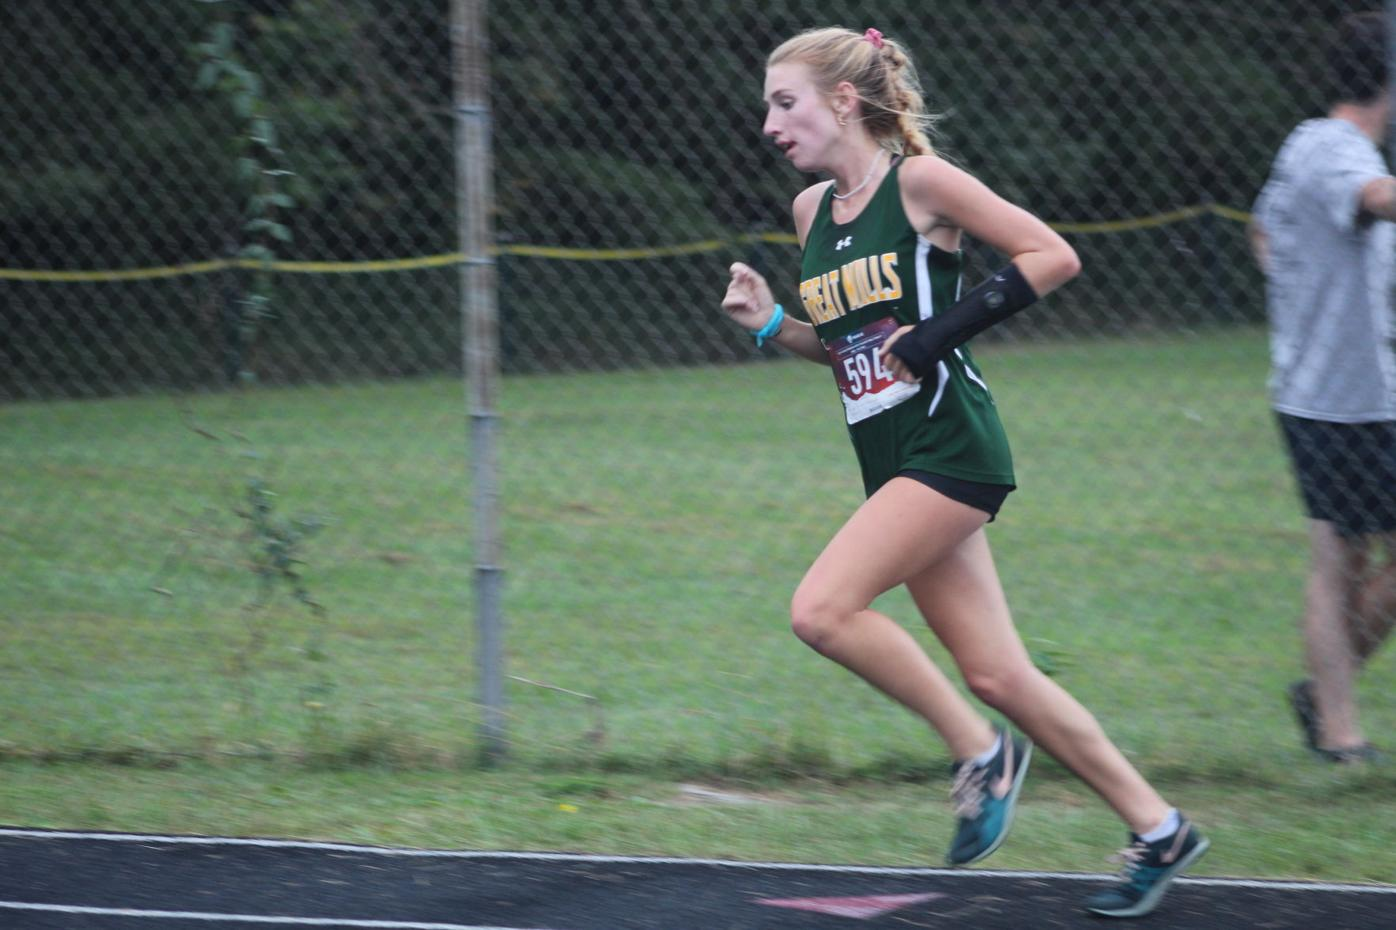 St. Mary's runners eyeing SMAC titles